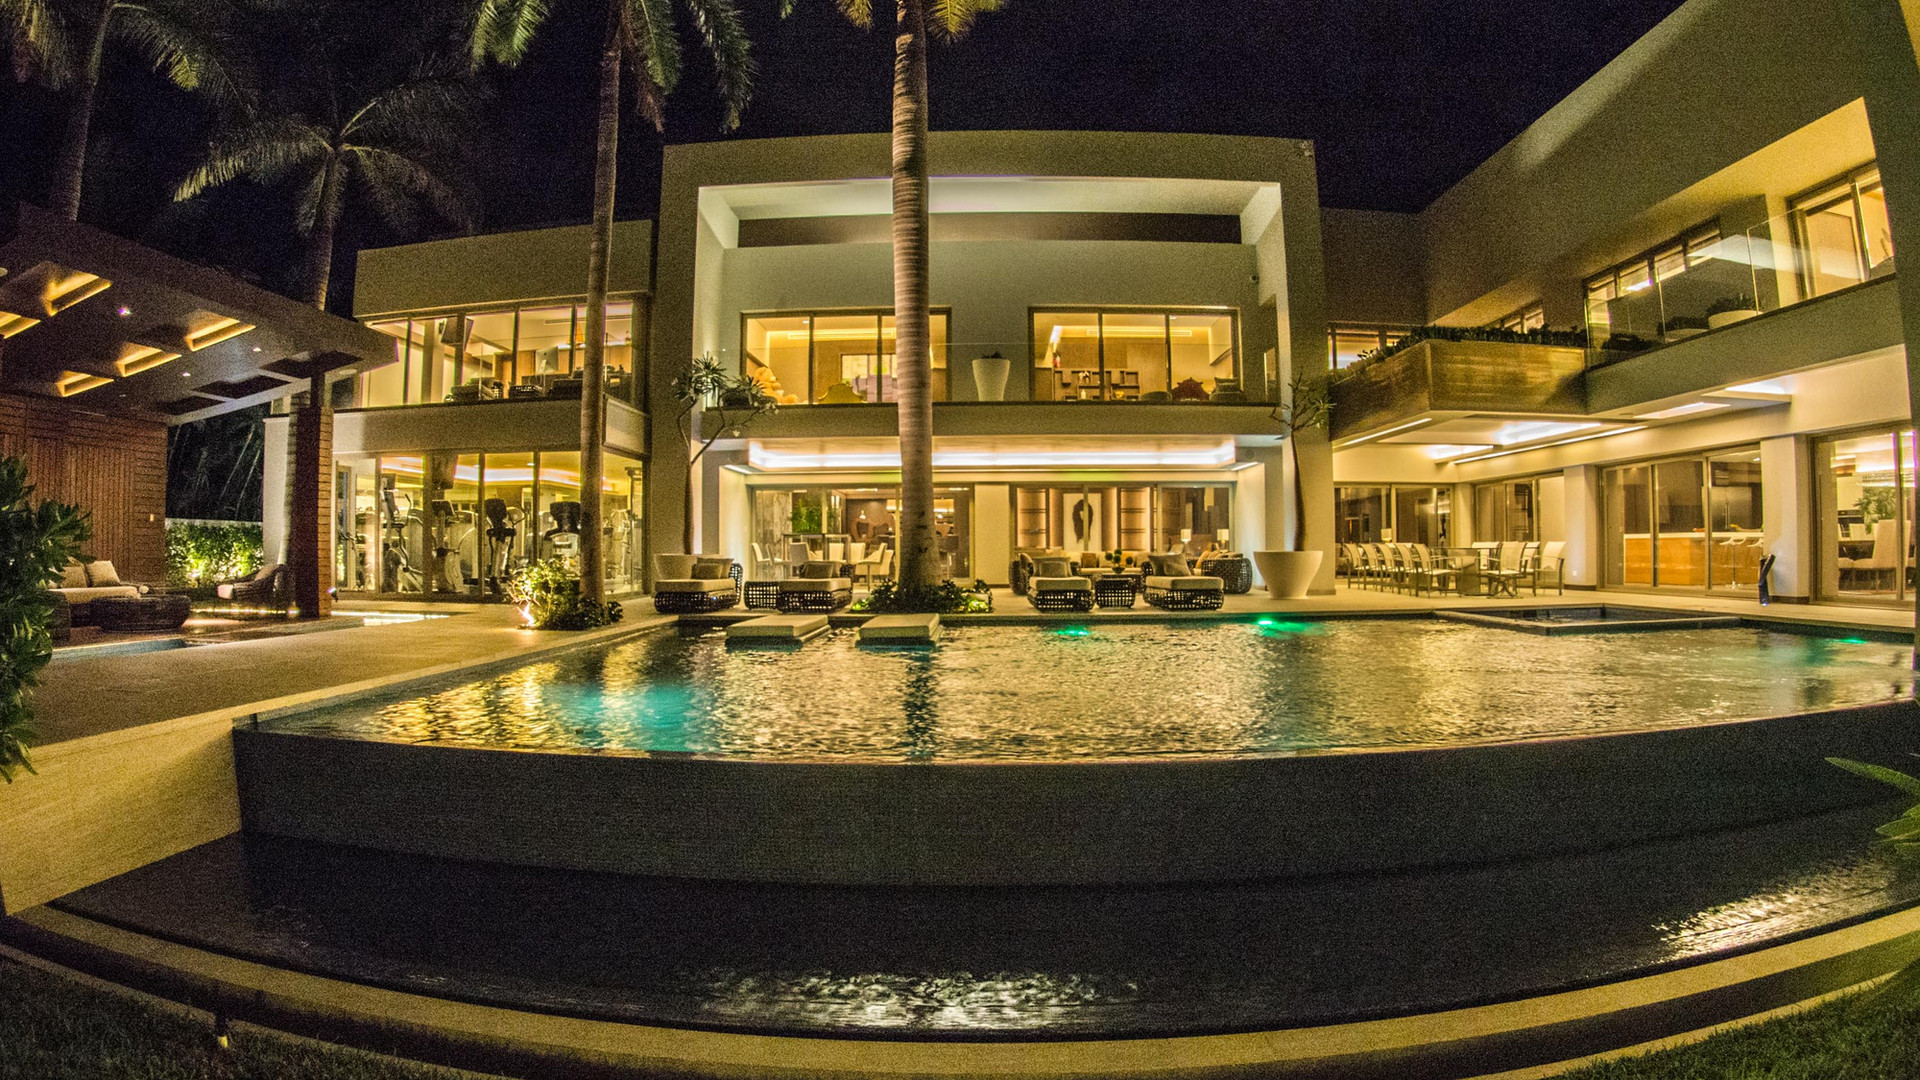 The location offers the best restaurants and shopping malls just a view minutes by foot and the airport is just 20 minutes away. This residence is 17,222 Sq.ft on a 0.75 acre lot (including 3230 Sq.ft of federal zone), 129 feet lagoon front and 218 feet deep. It sells fully furnished and offers very luxury high-end appliances, including a separate commercial kitchen. An executive office with an additional direct entrance from outside the home, a large gym, a private dock, and wonderful views of the lagoons make this property the perfect place for family living or a corporate getaway. The modern layout is well planned with great natural light and very spacious areas. The building offers 100% hurricane protection. This incredible property is one of the most luxurious residences built in Cancun.